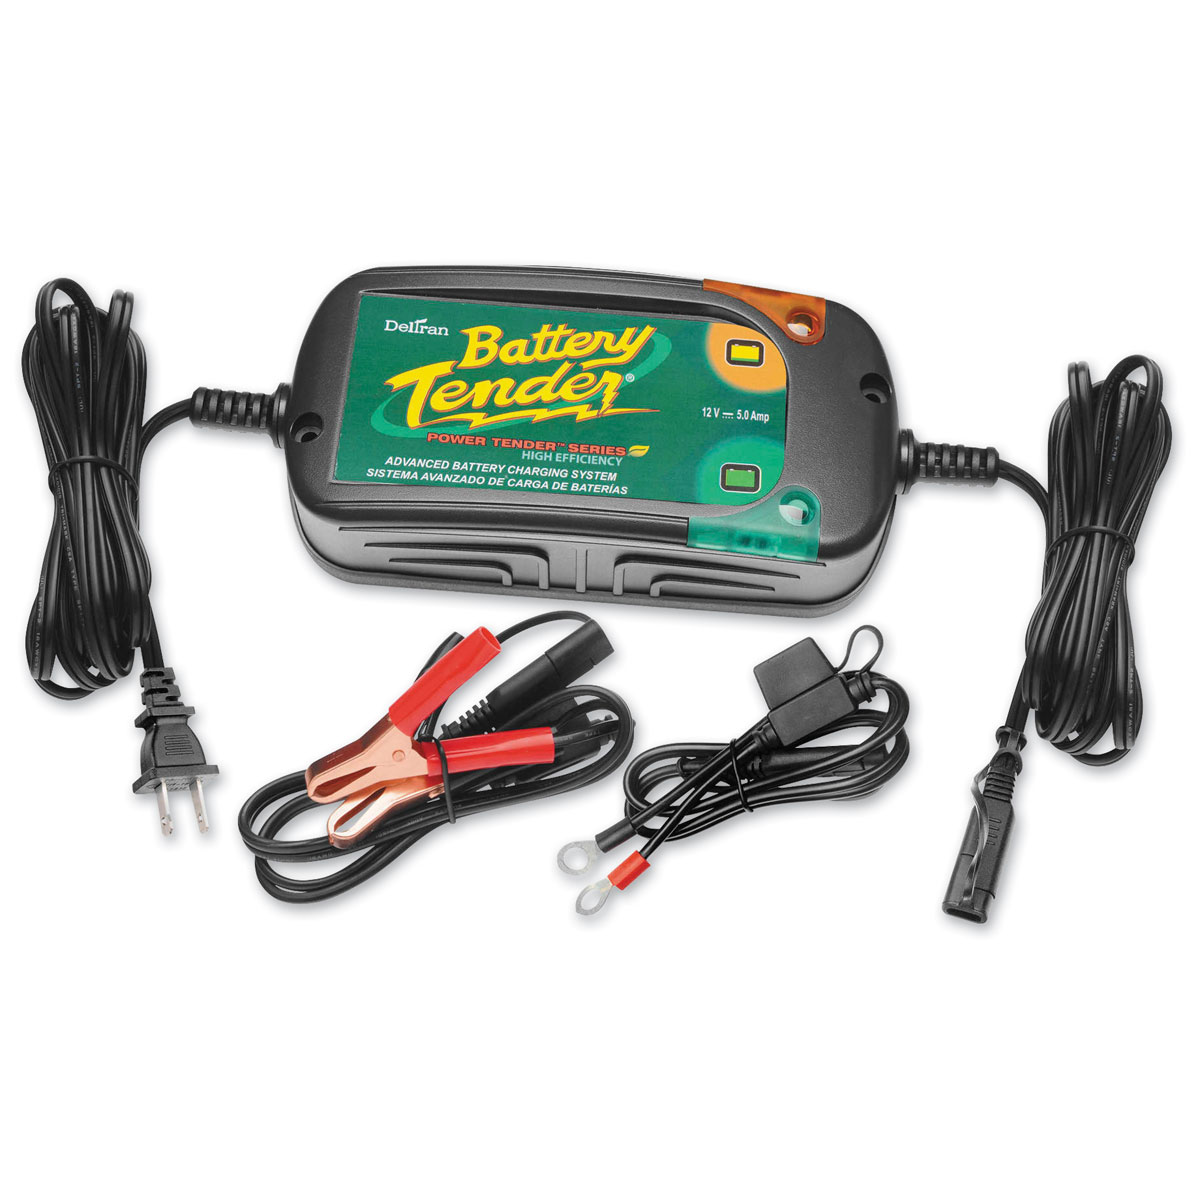 Battery Tender 5-Amp High Efficiency Battery Charger